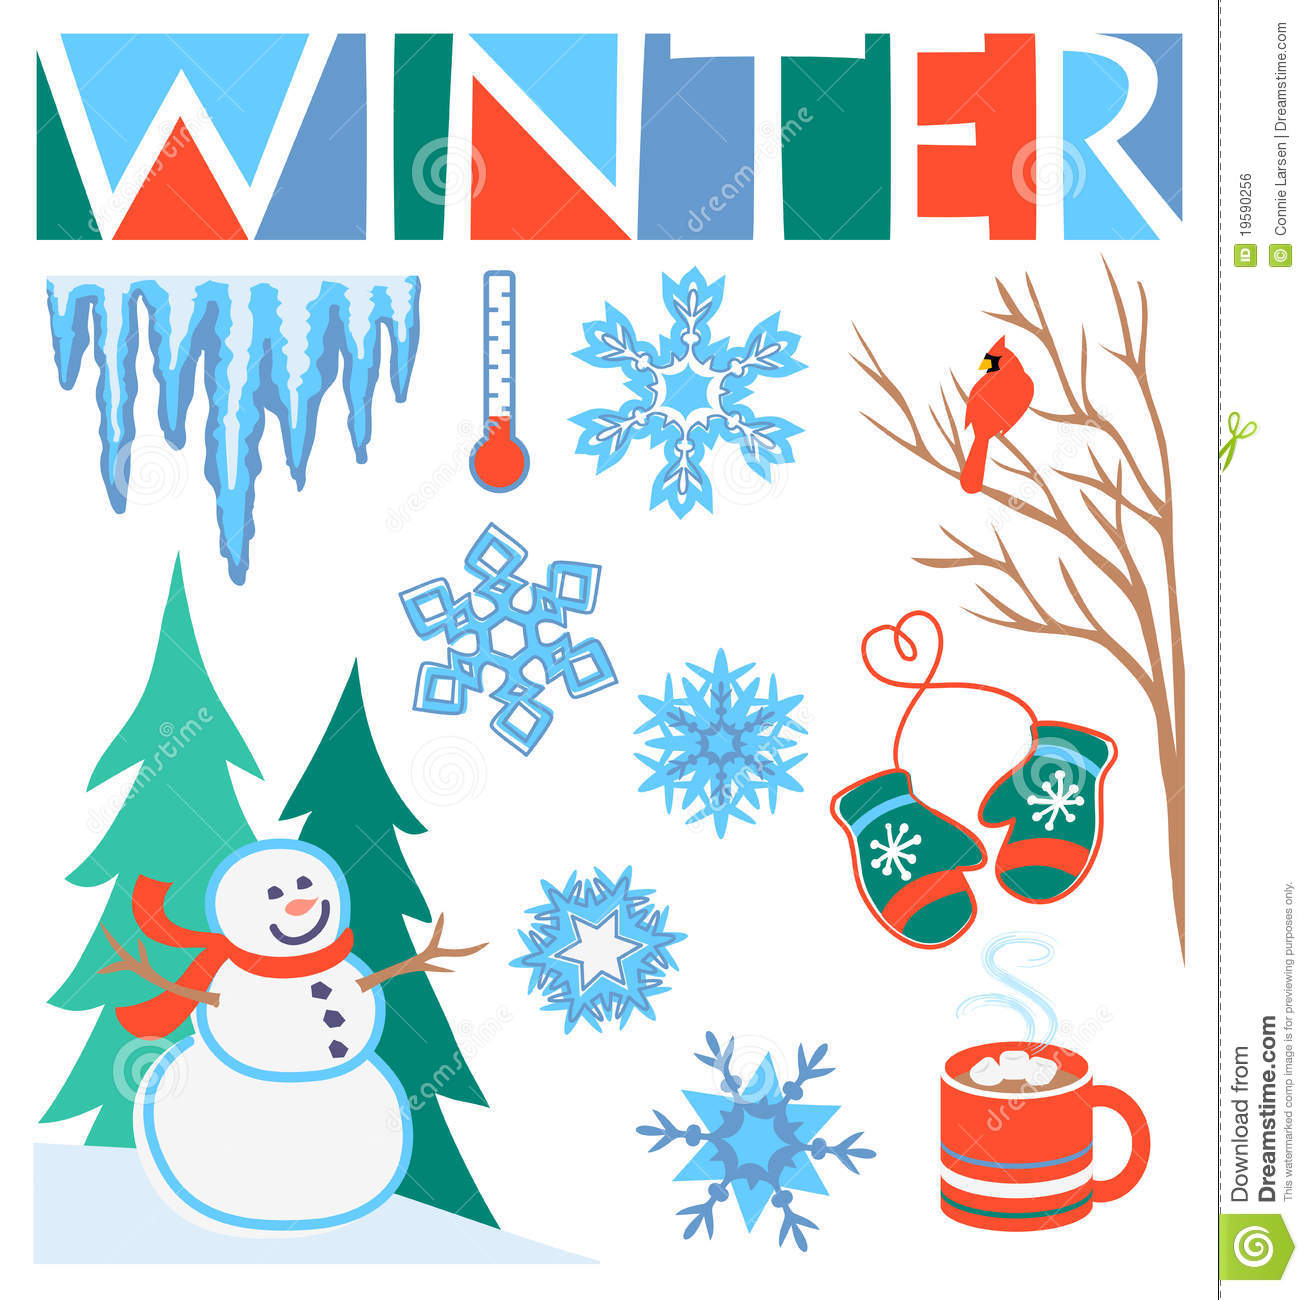 Illustrations of winter icons including a snowman, icicles, snowflakes ...